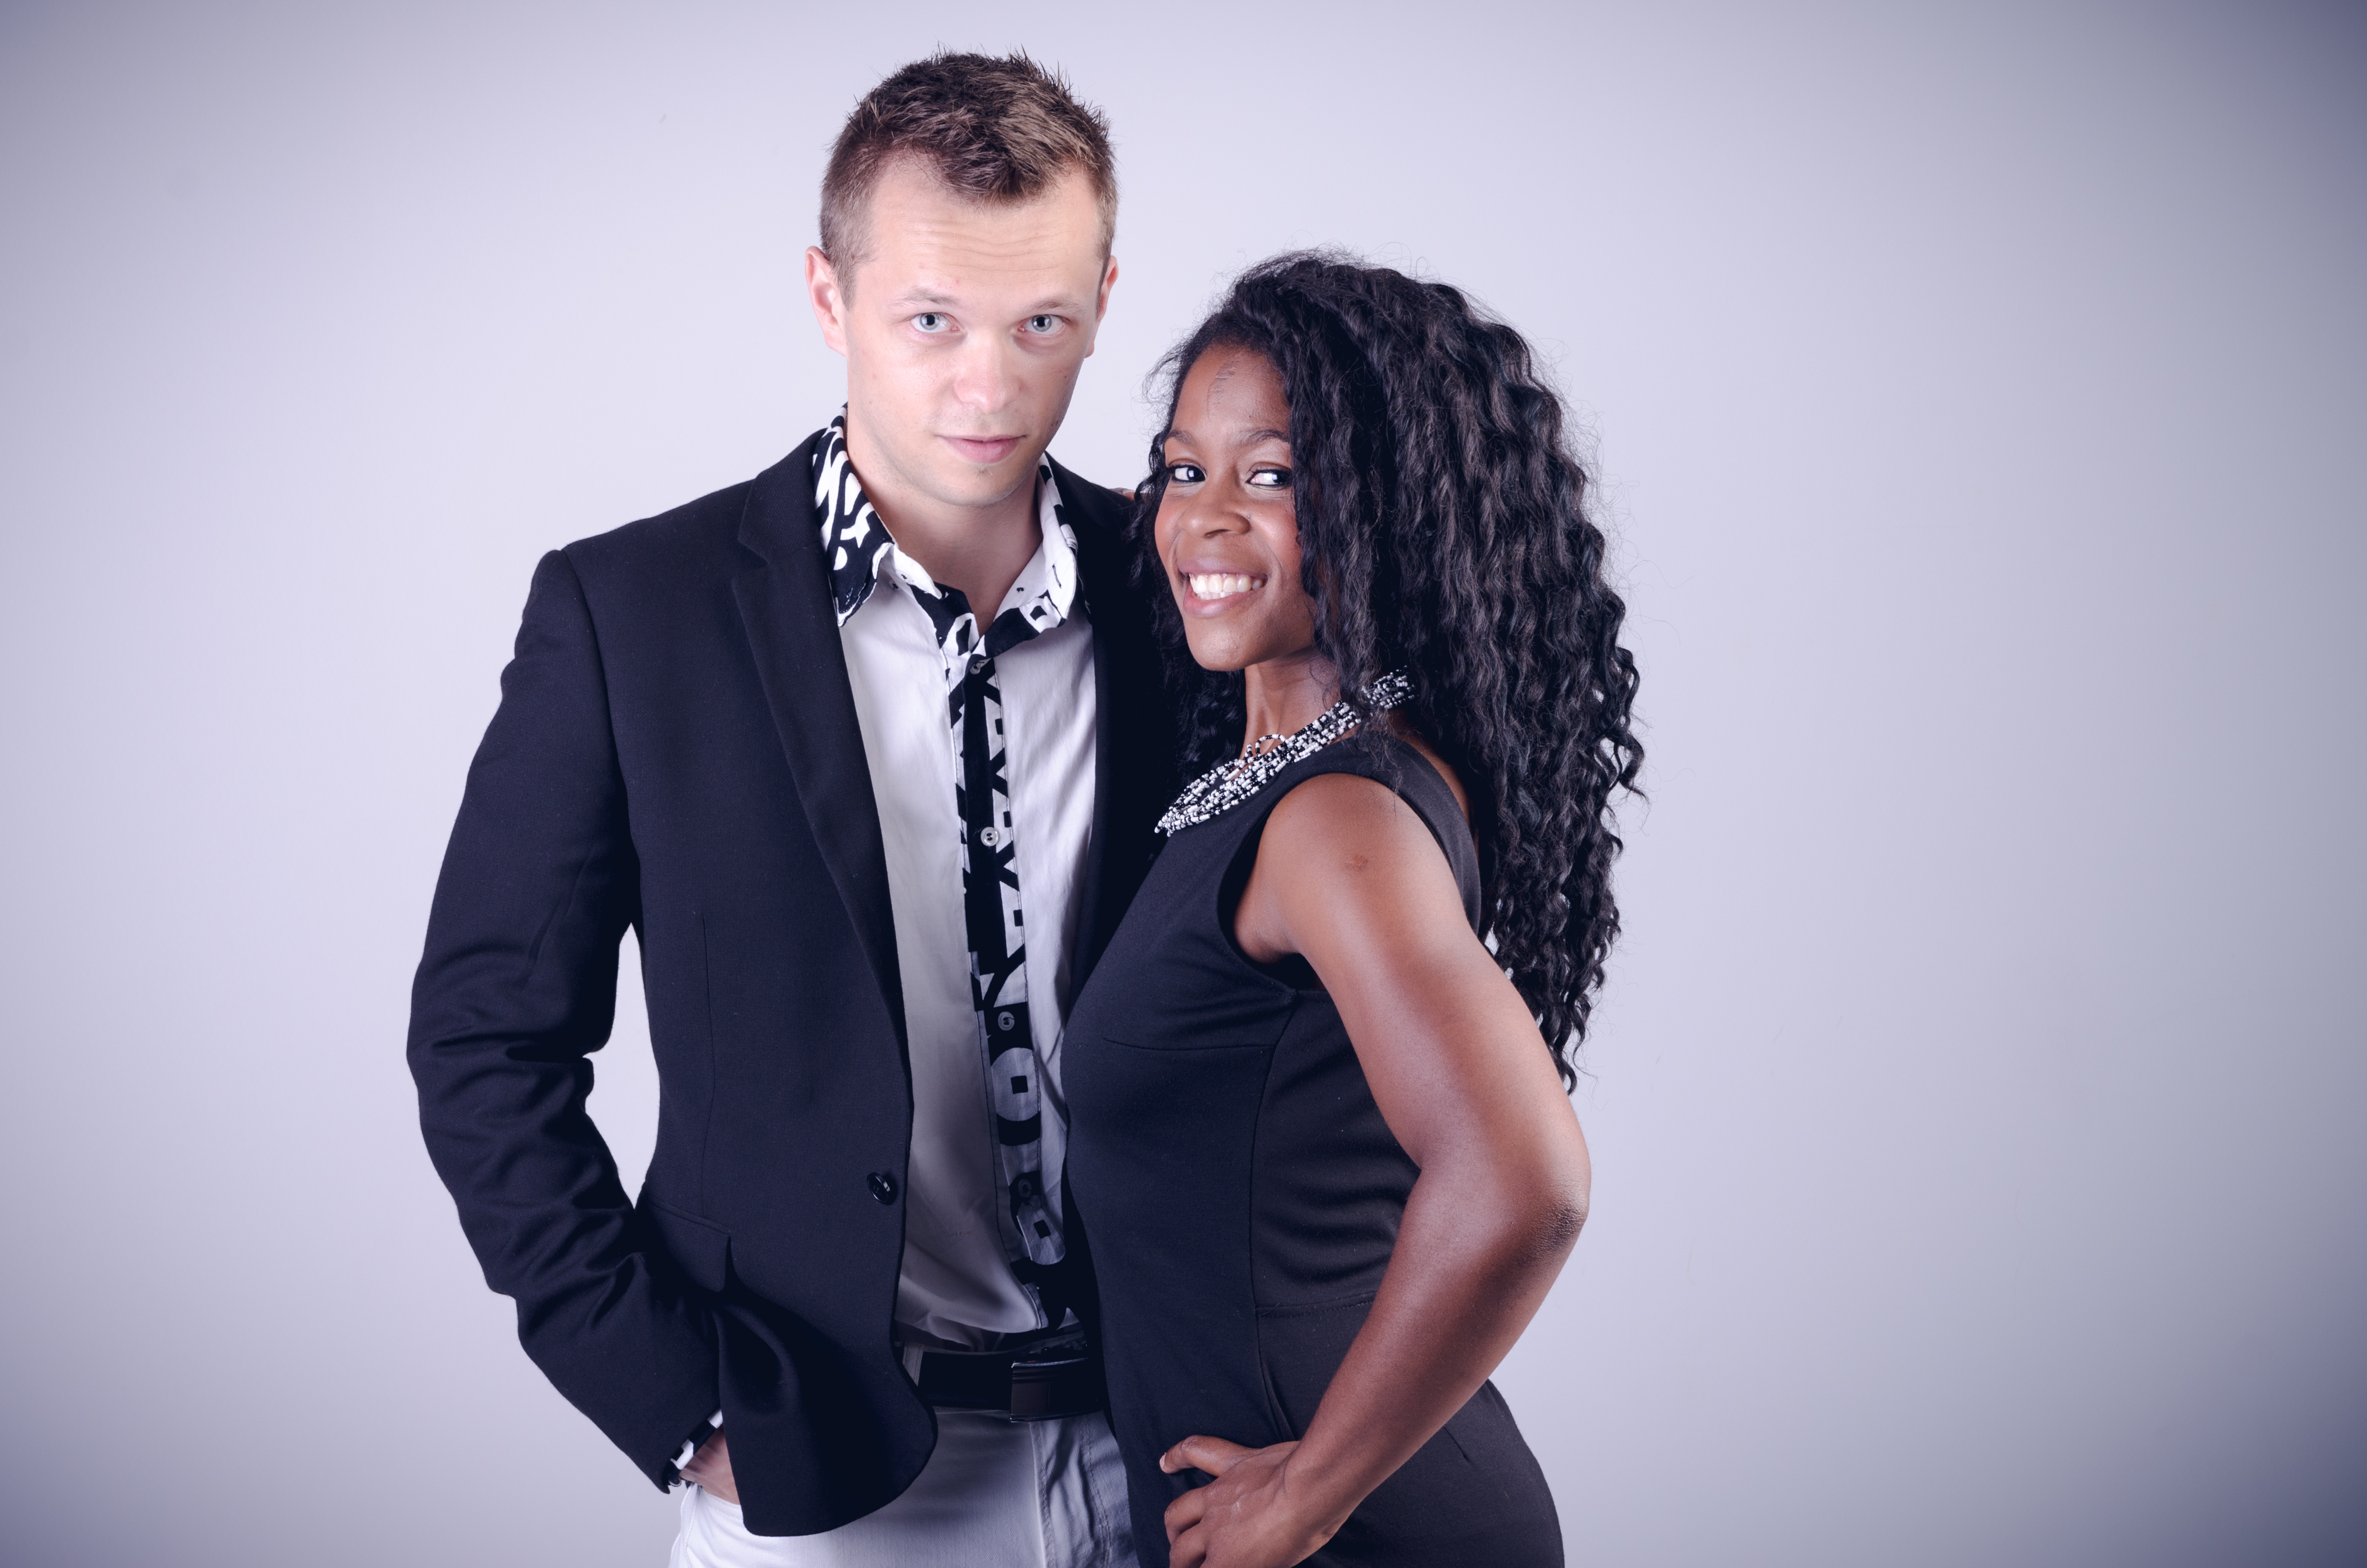 Private kizomba classes with Paweł & Marly